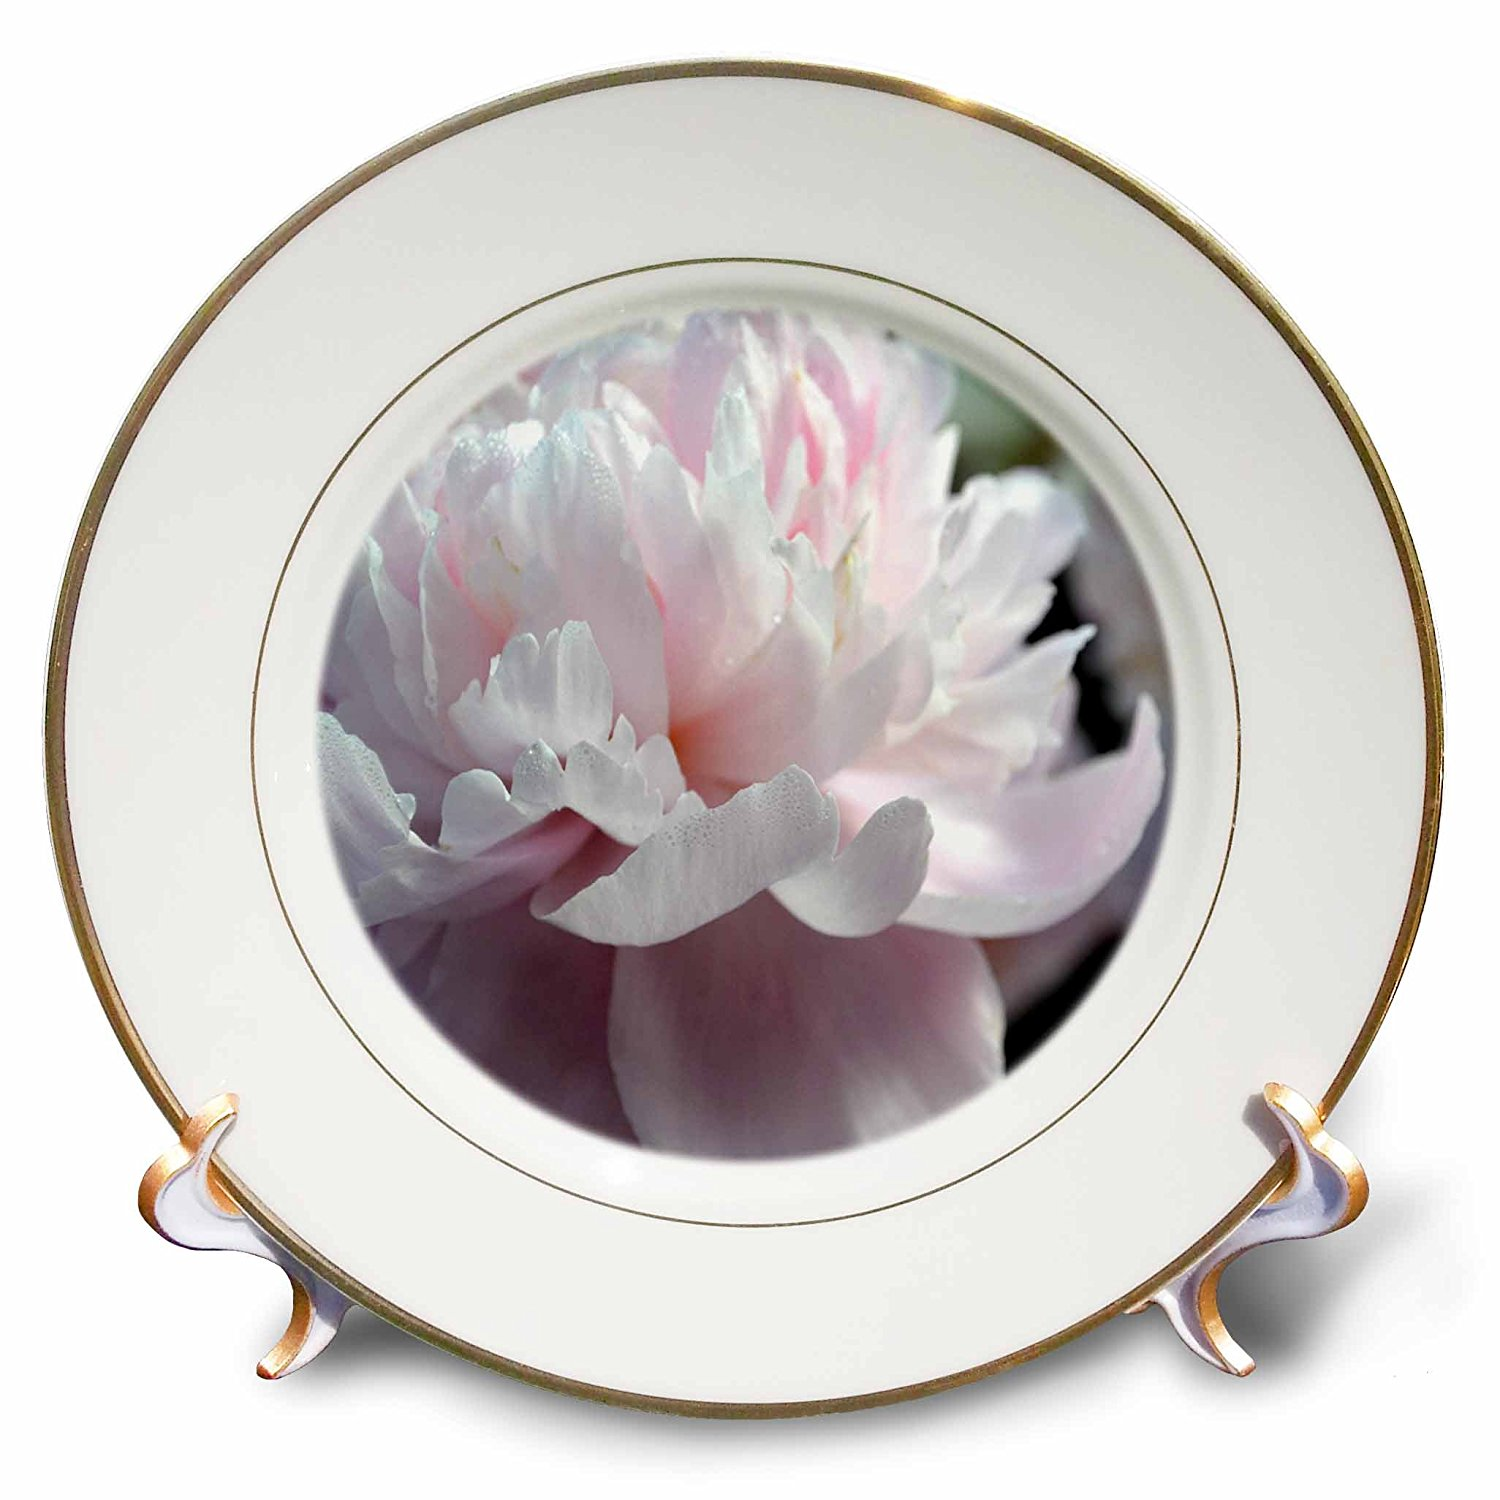 8 3dRose cp/_51022/_1 Soft Pink Peony Flower Porcelain Plate